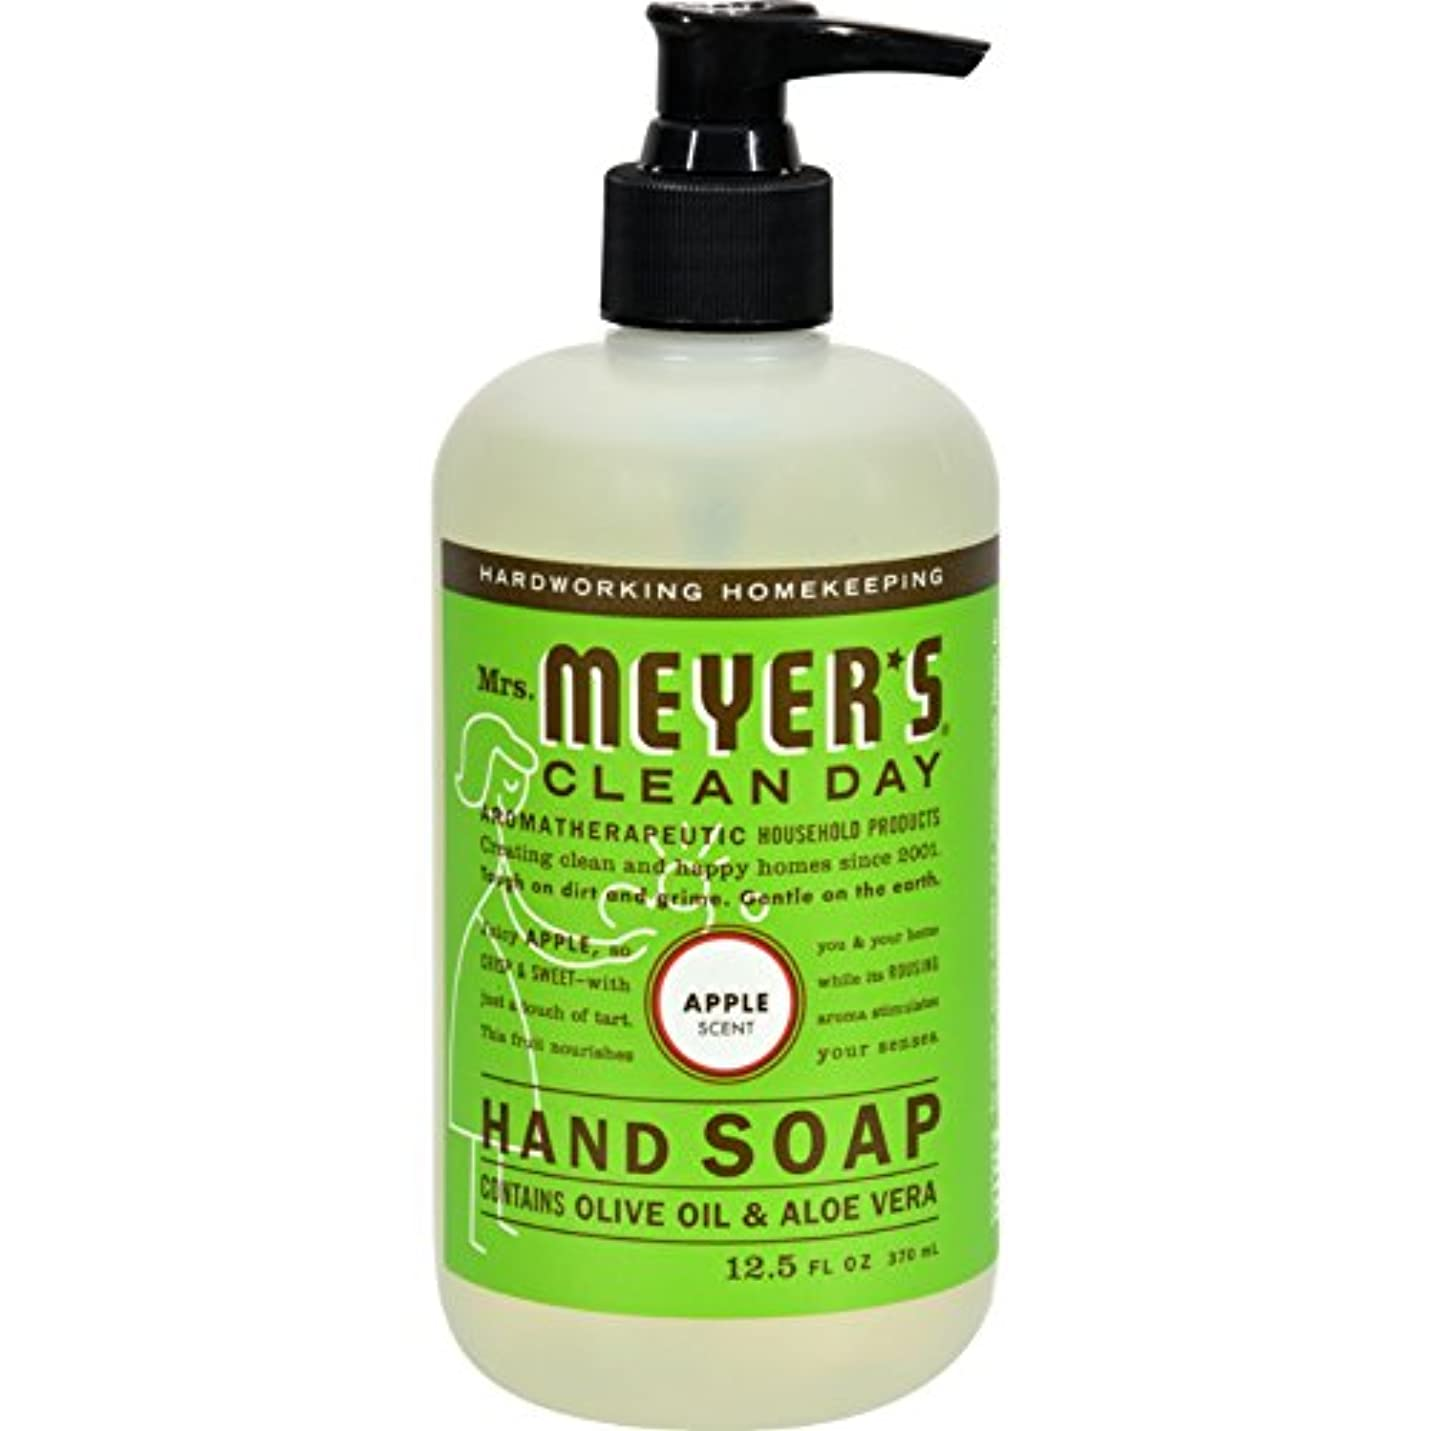 君主着陸利用可能Liquid Hand Soap - Apple - Case of 6 - 12.5 oz by Mrs. Meyer's